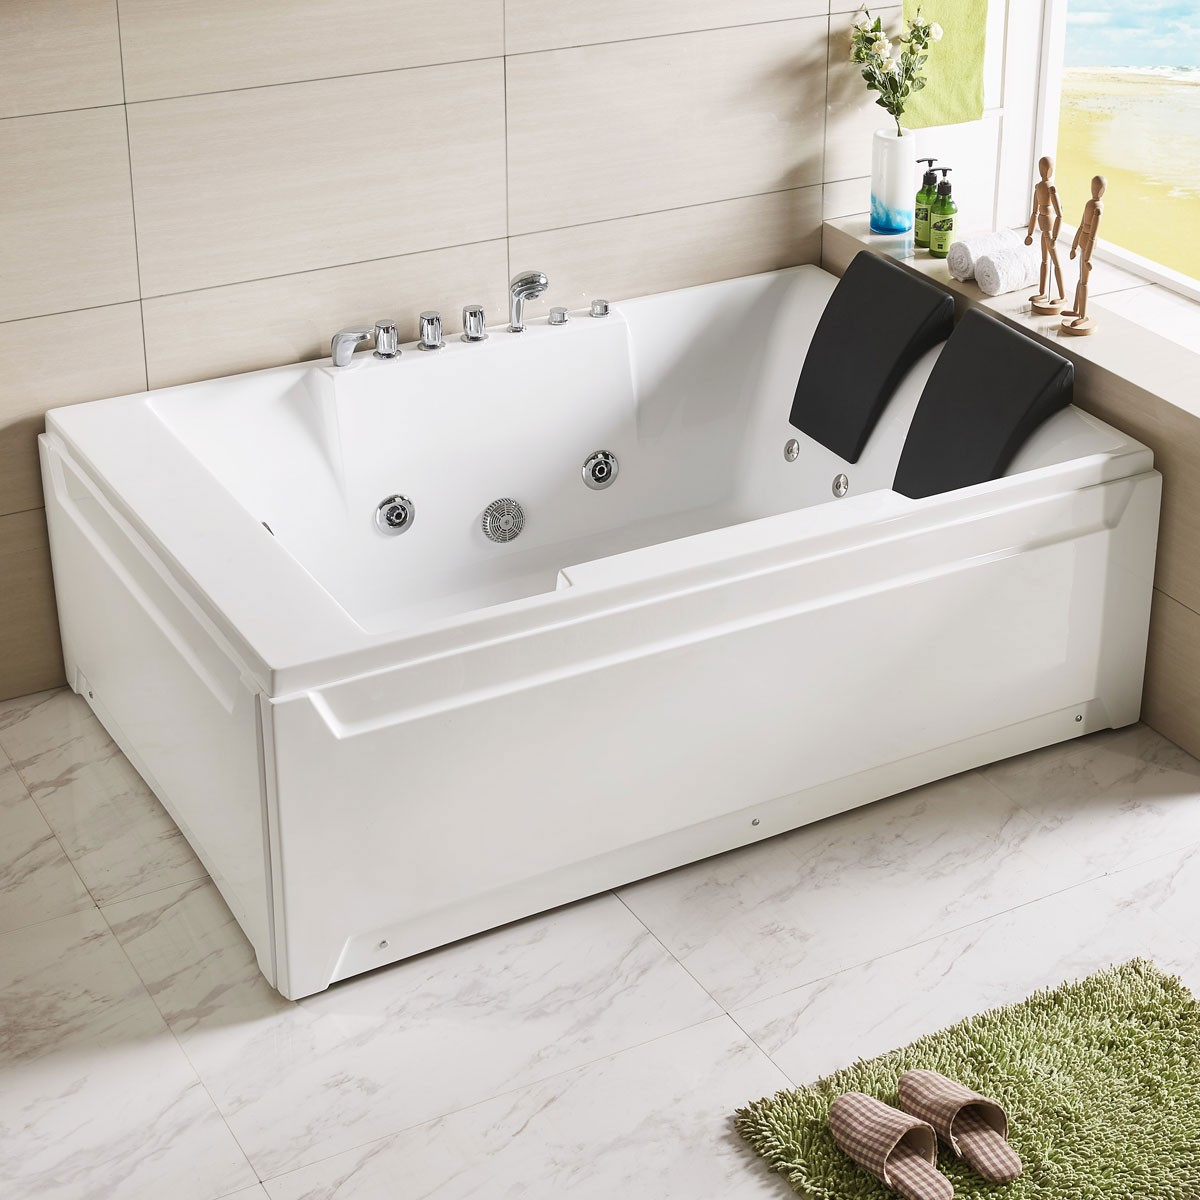 72 x 48 In Whirlpool Tub with Double Pillow (DK-Q367) | Decoraport USA